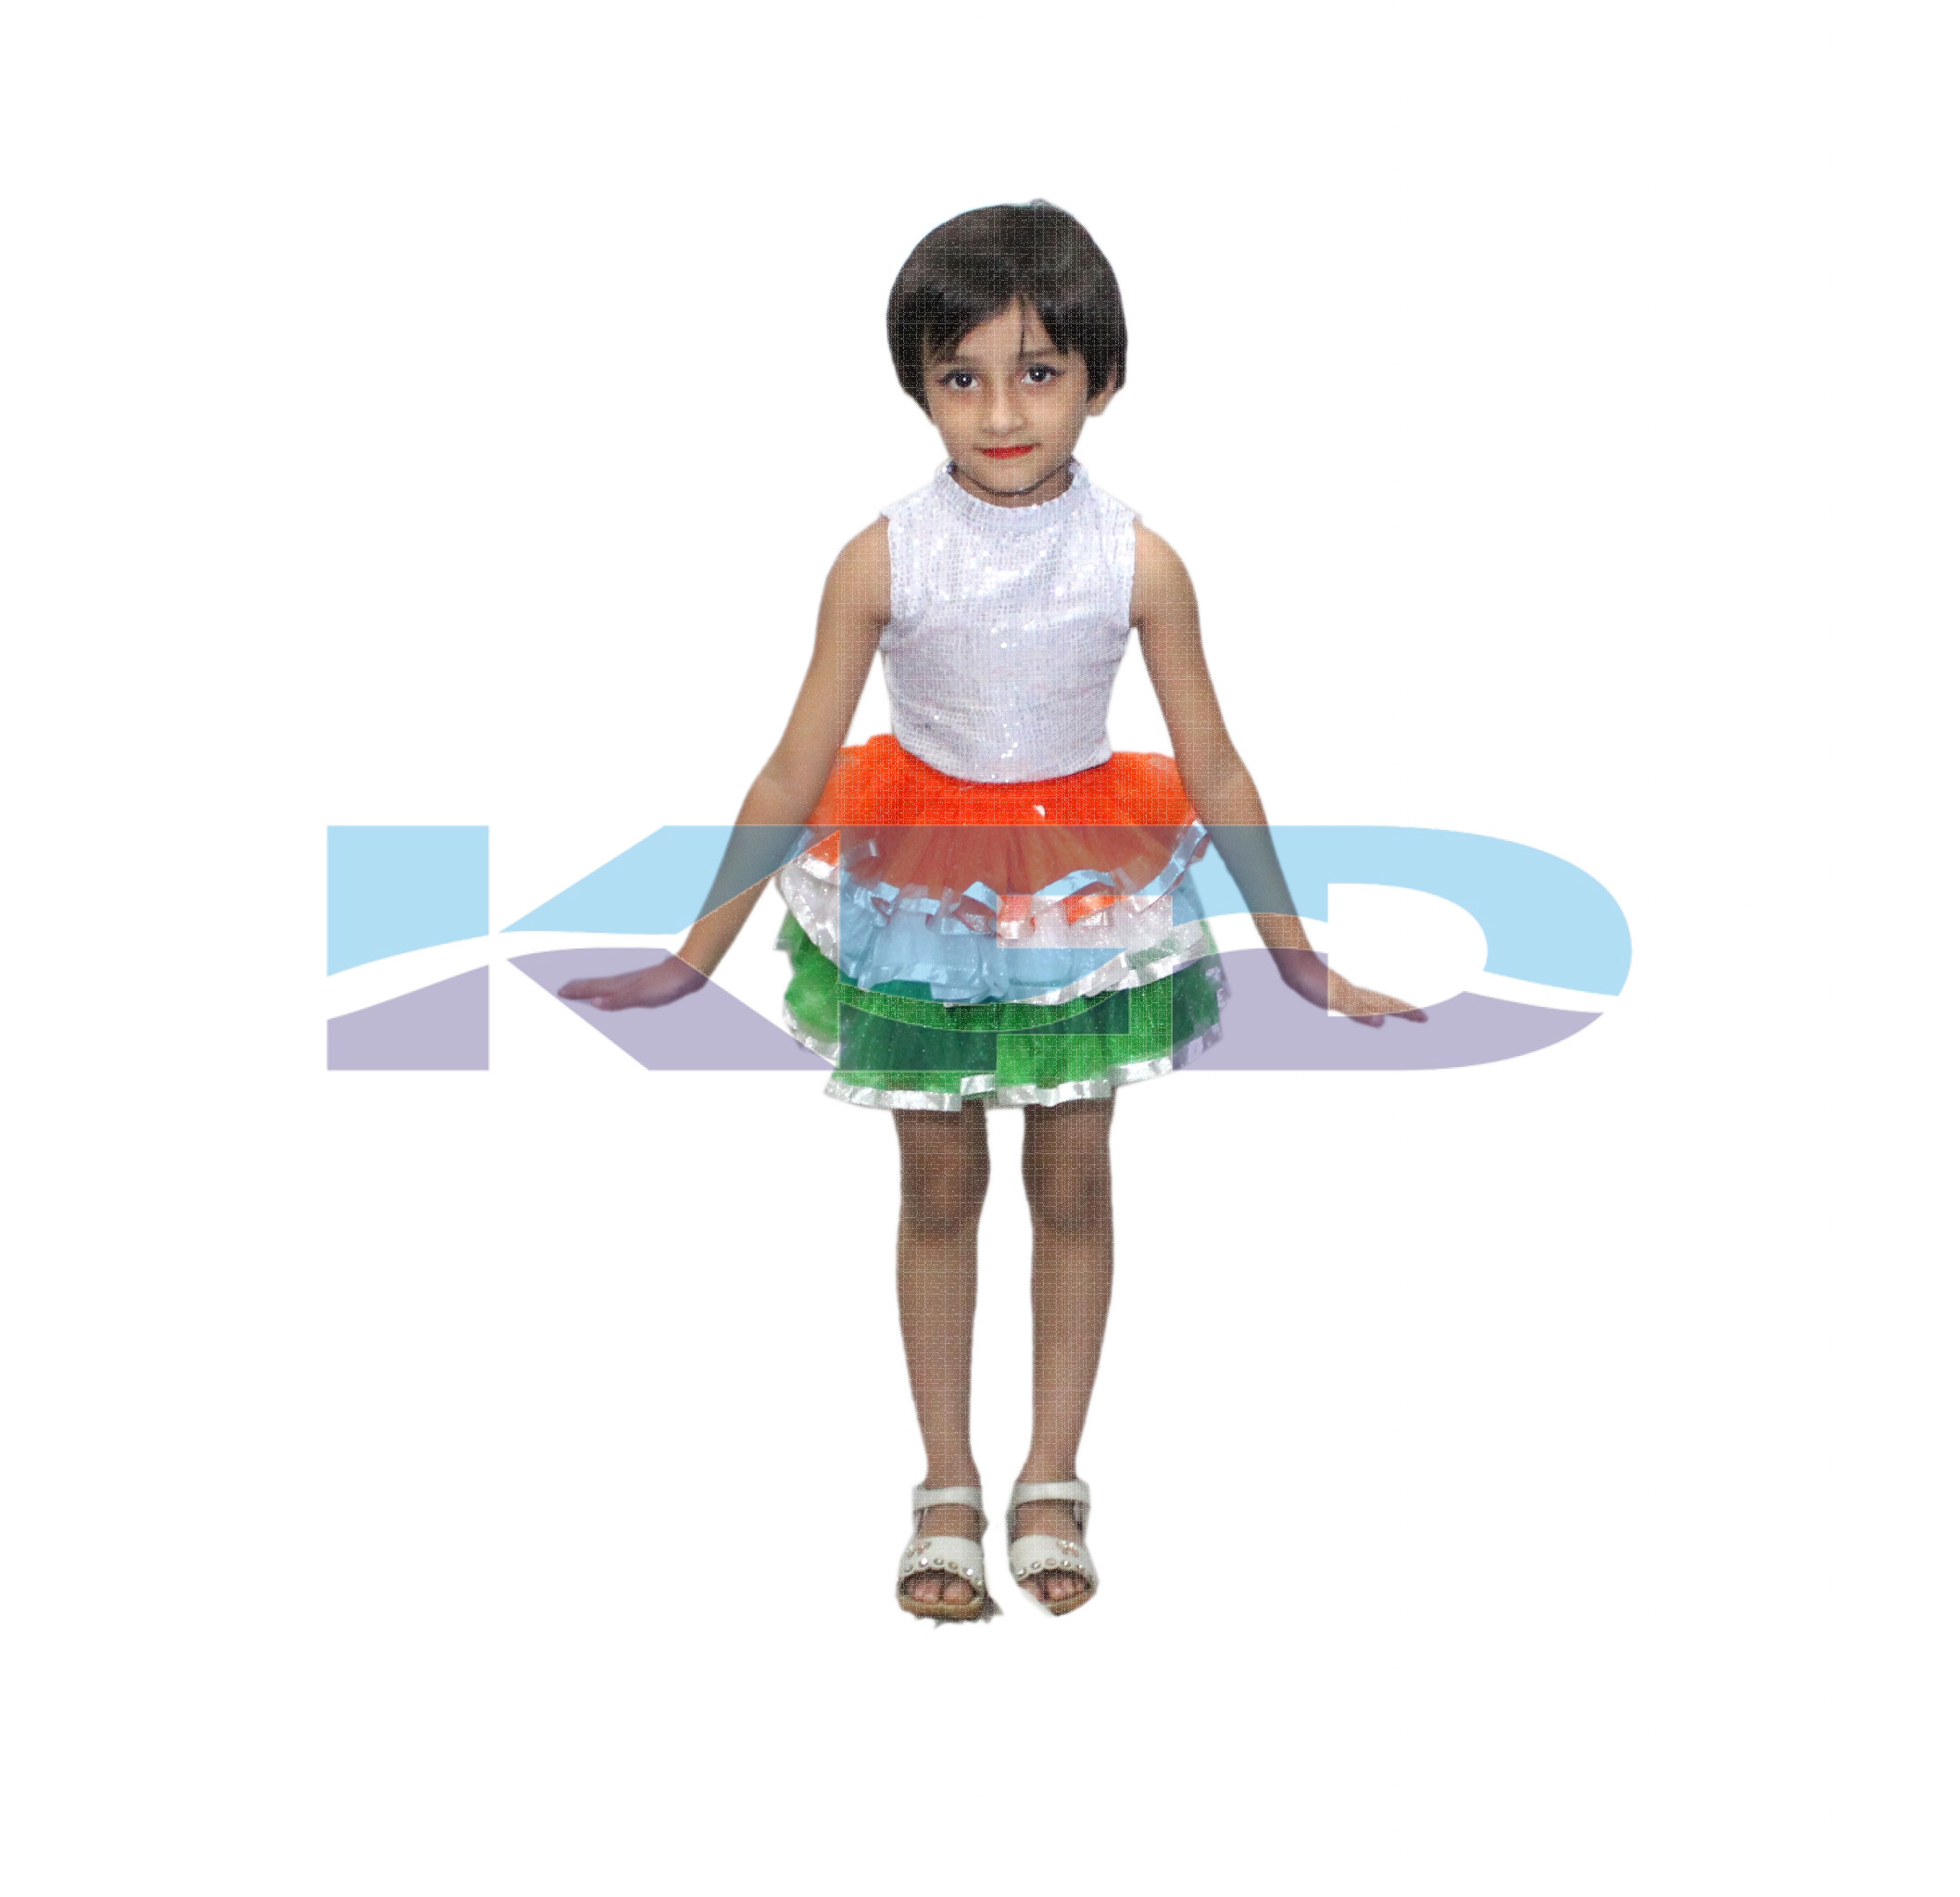 Tri Color Tu Tu Skirt Costume For Kids Western Dance/Independence Day Special/School Annual function/Theme Party/Competition/Stage Shows/Birthday Party Dress